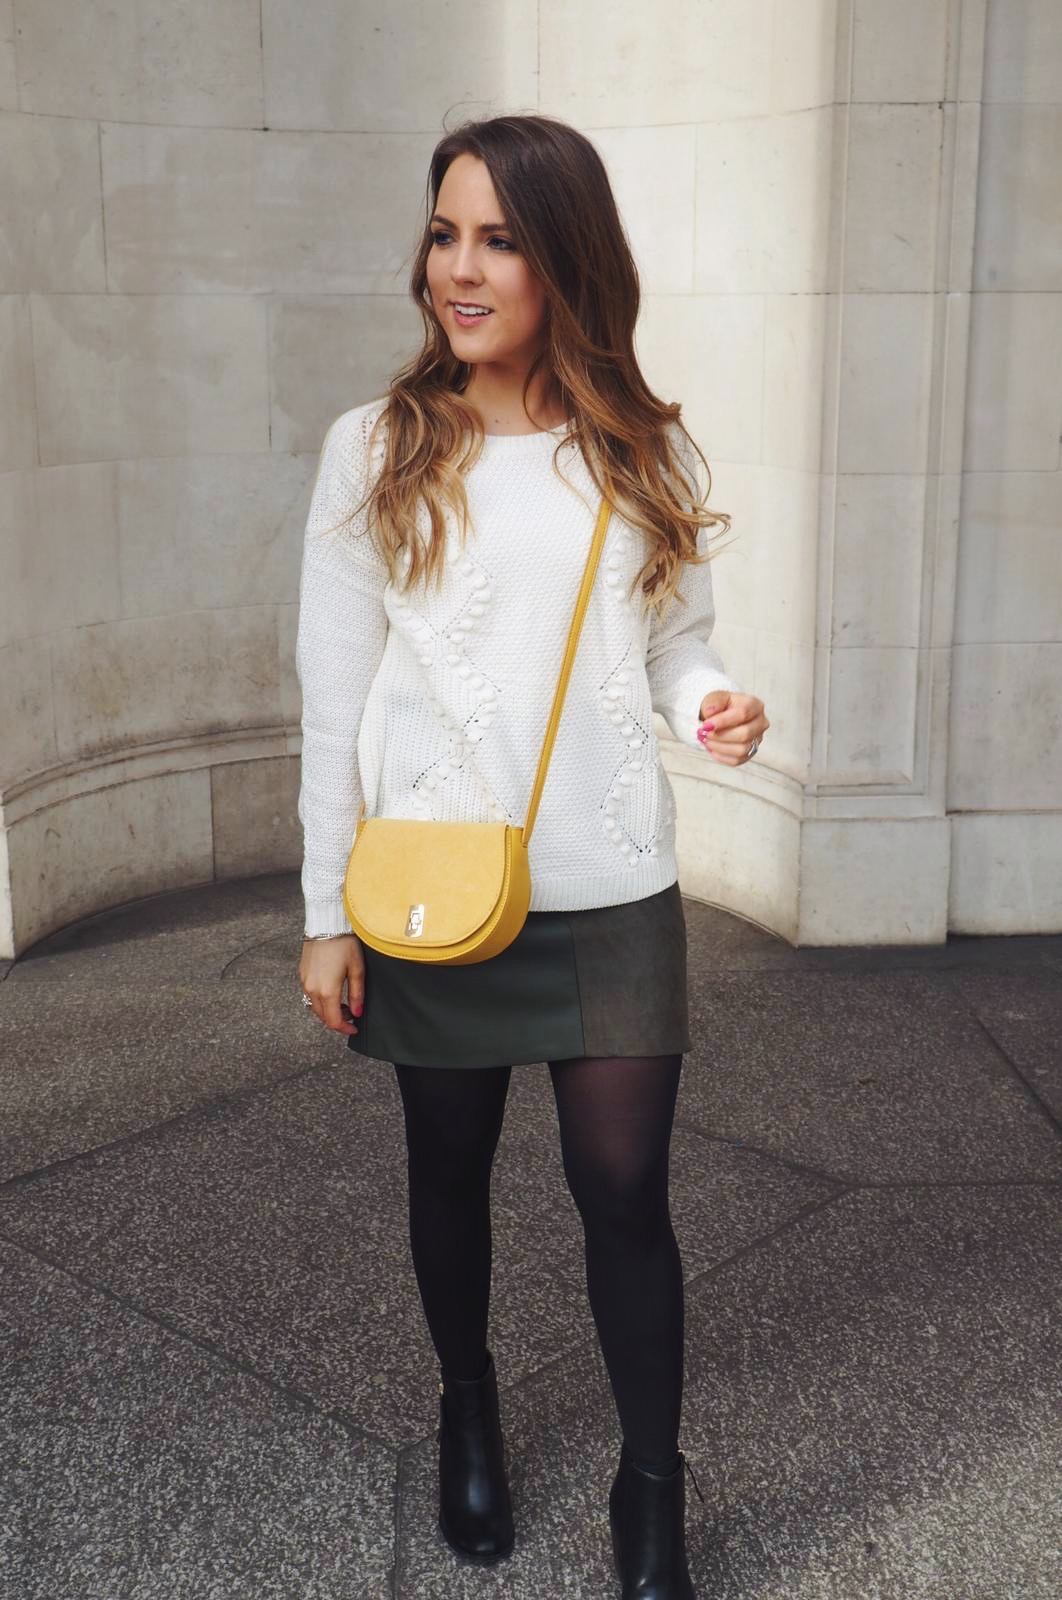 Oasis Martini Mac, Khaki suede skirt, yellow cross body bag, cream cable knit jumper, high heeled black boots